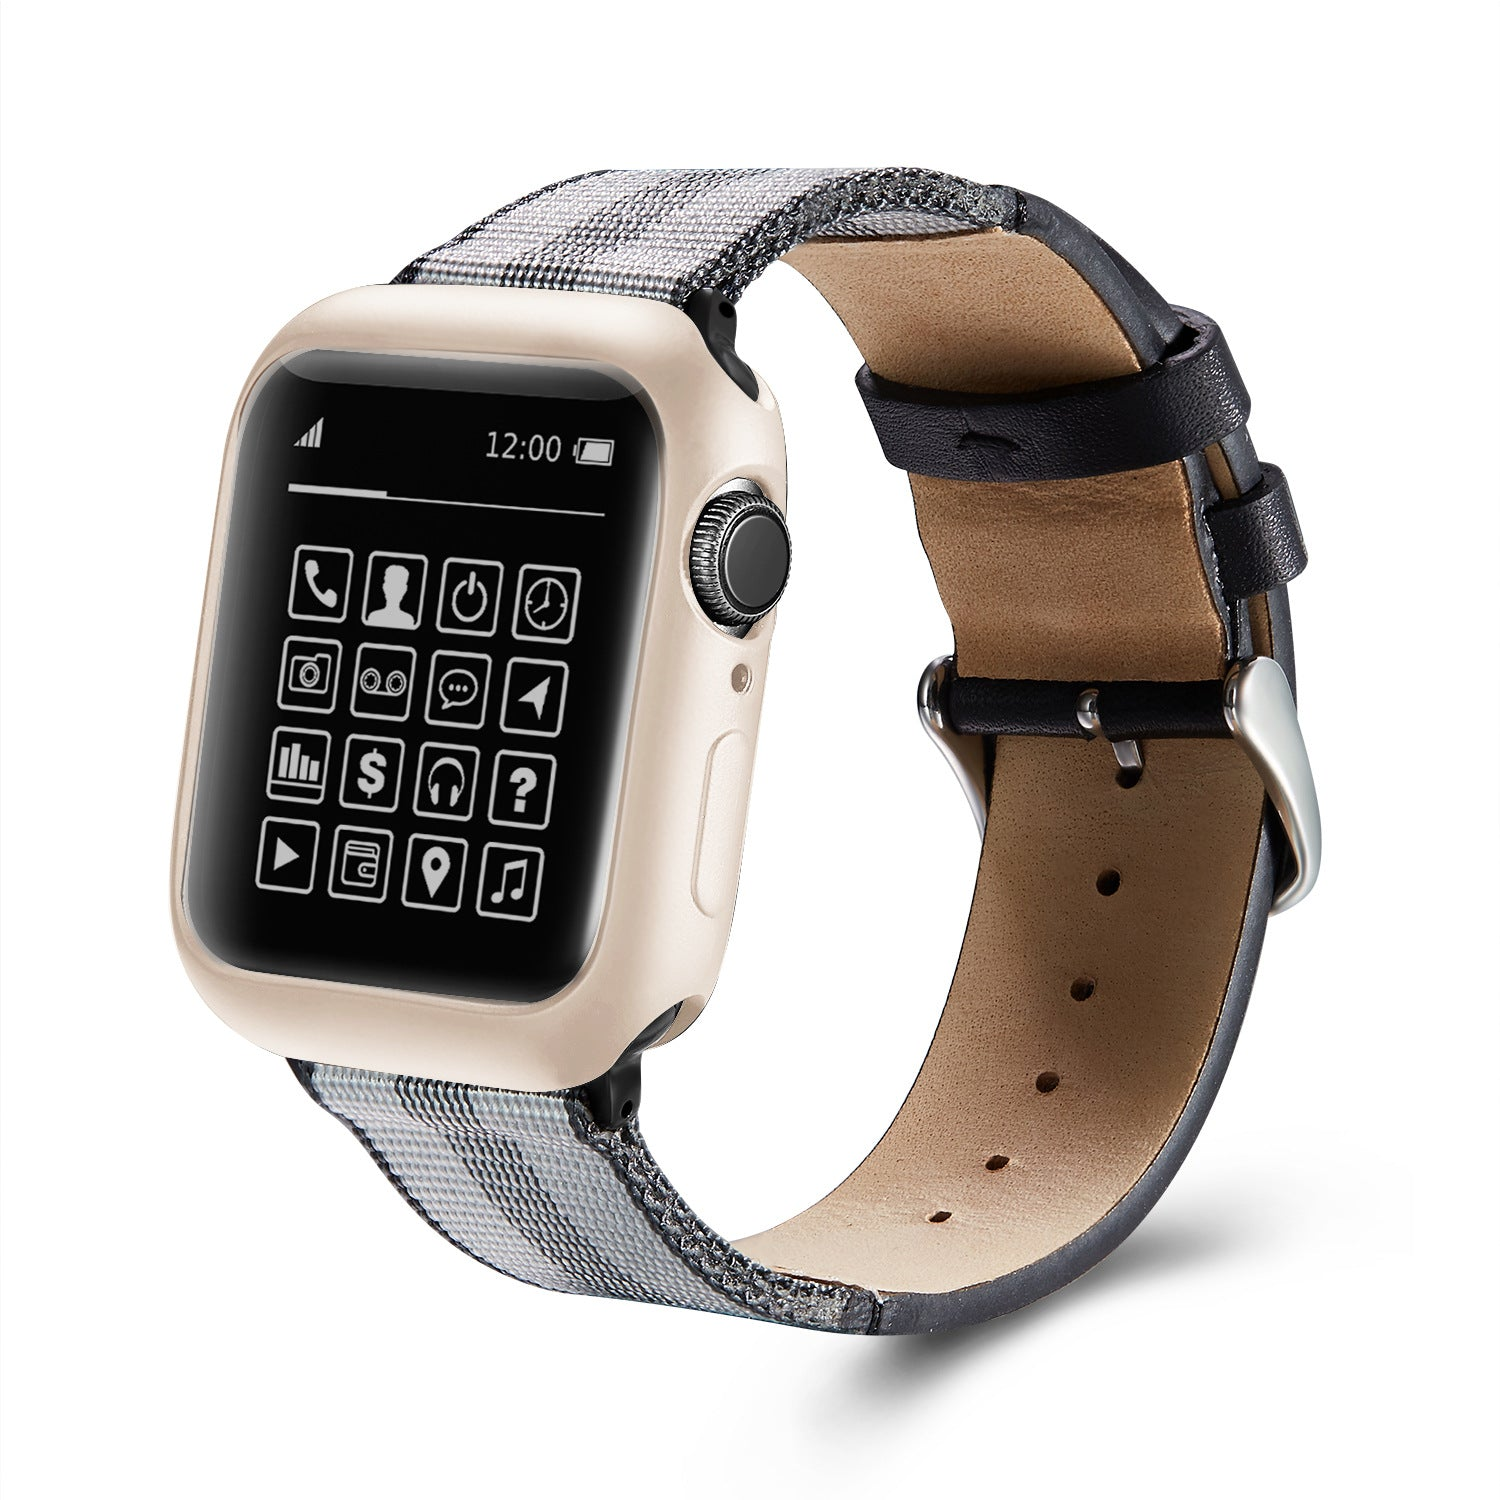 Applicable AppleWatch case tpu fuel injection case Apple Watch case iwatch half case soft